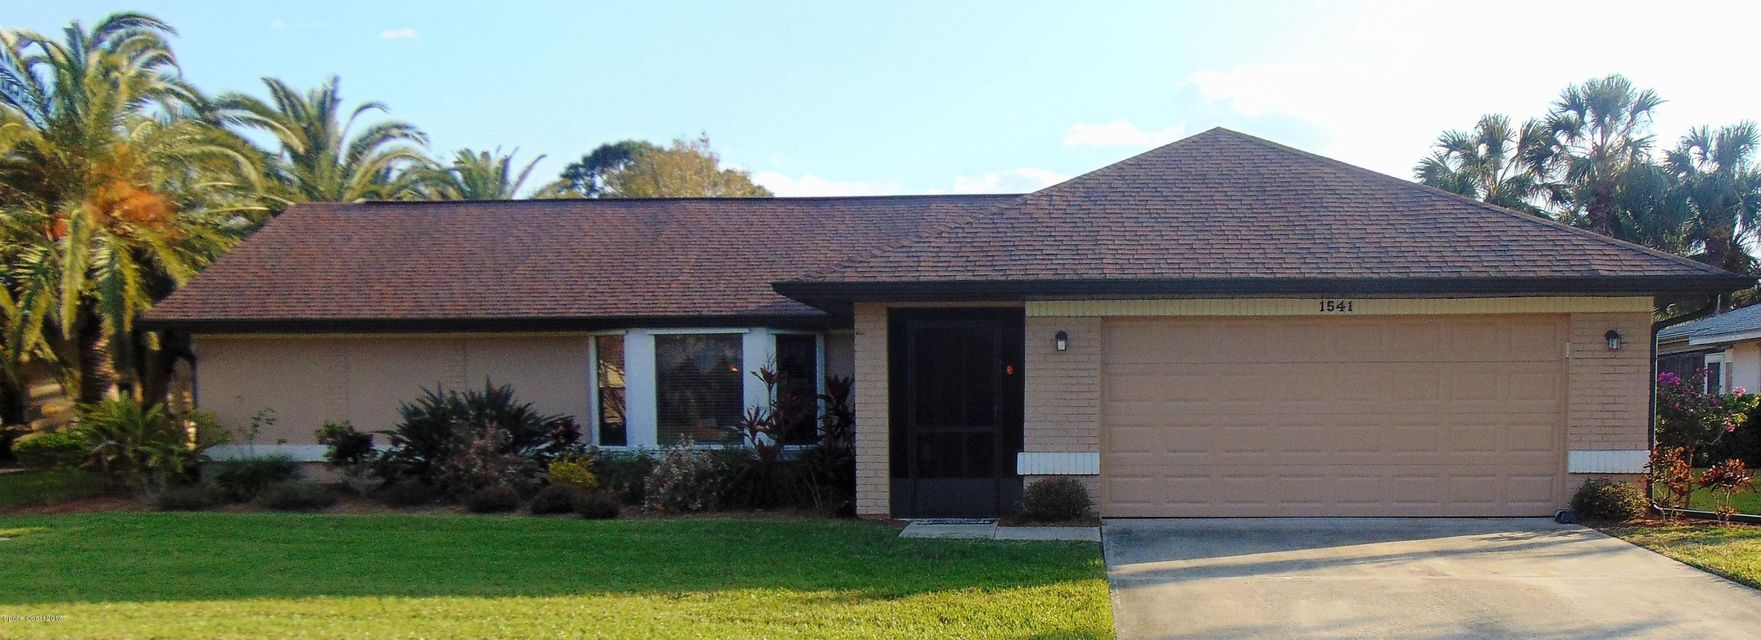 1541 Freedom Drive, Melbourne, FL 32940